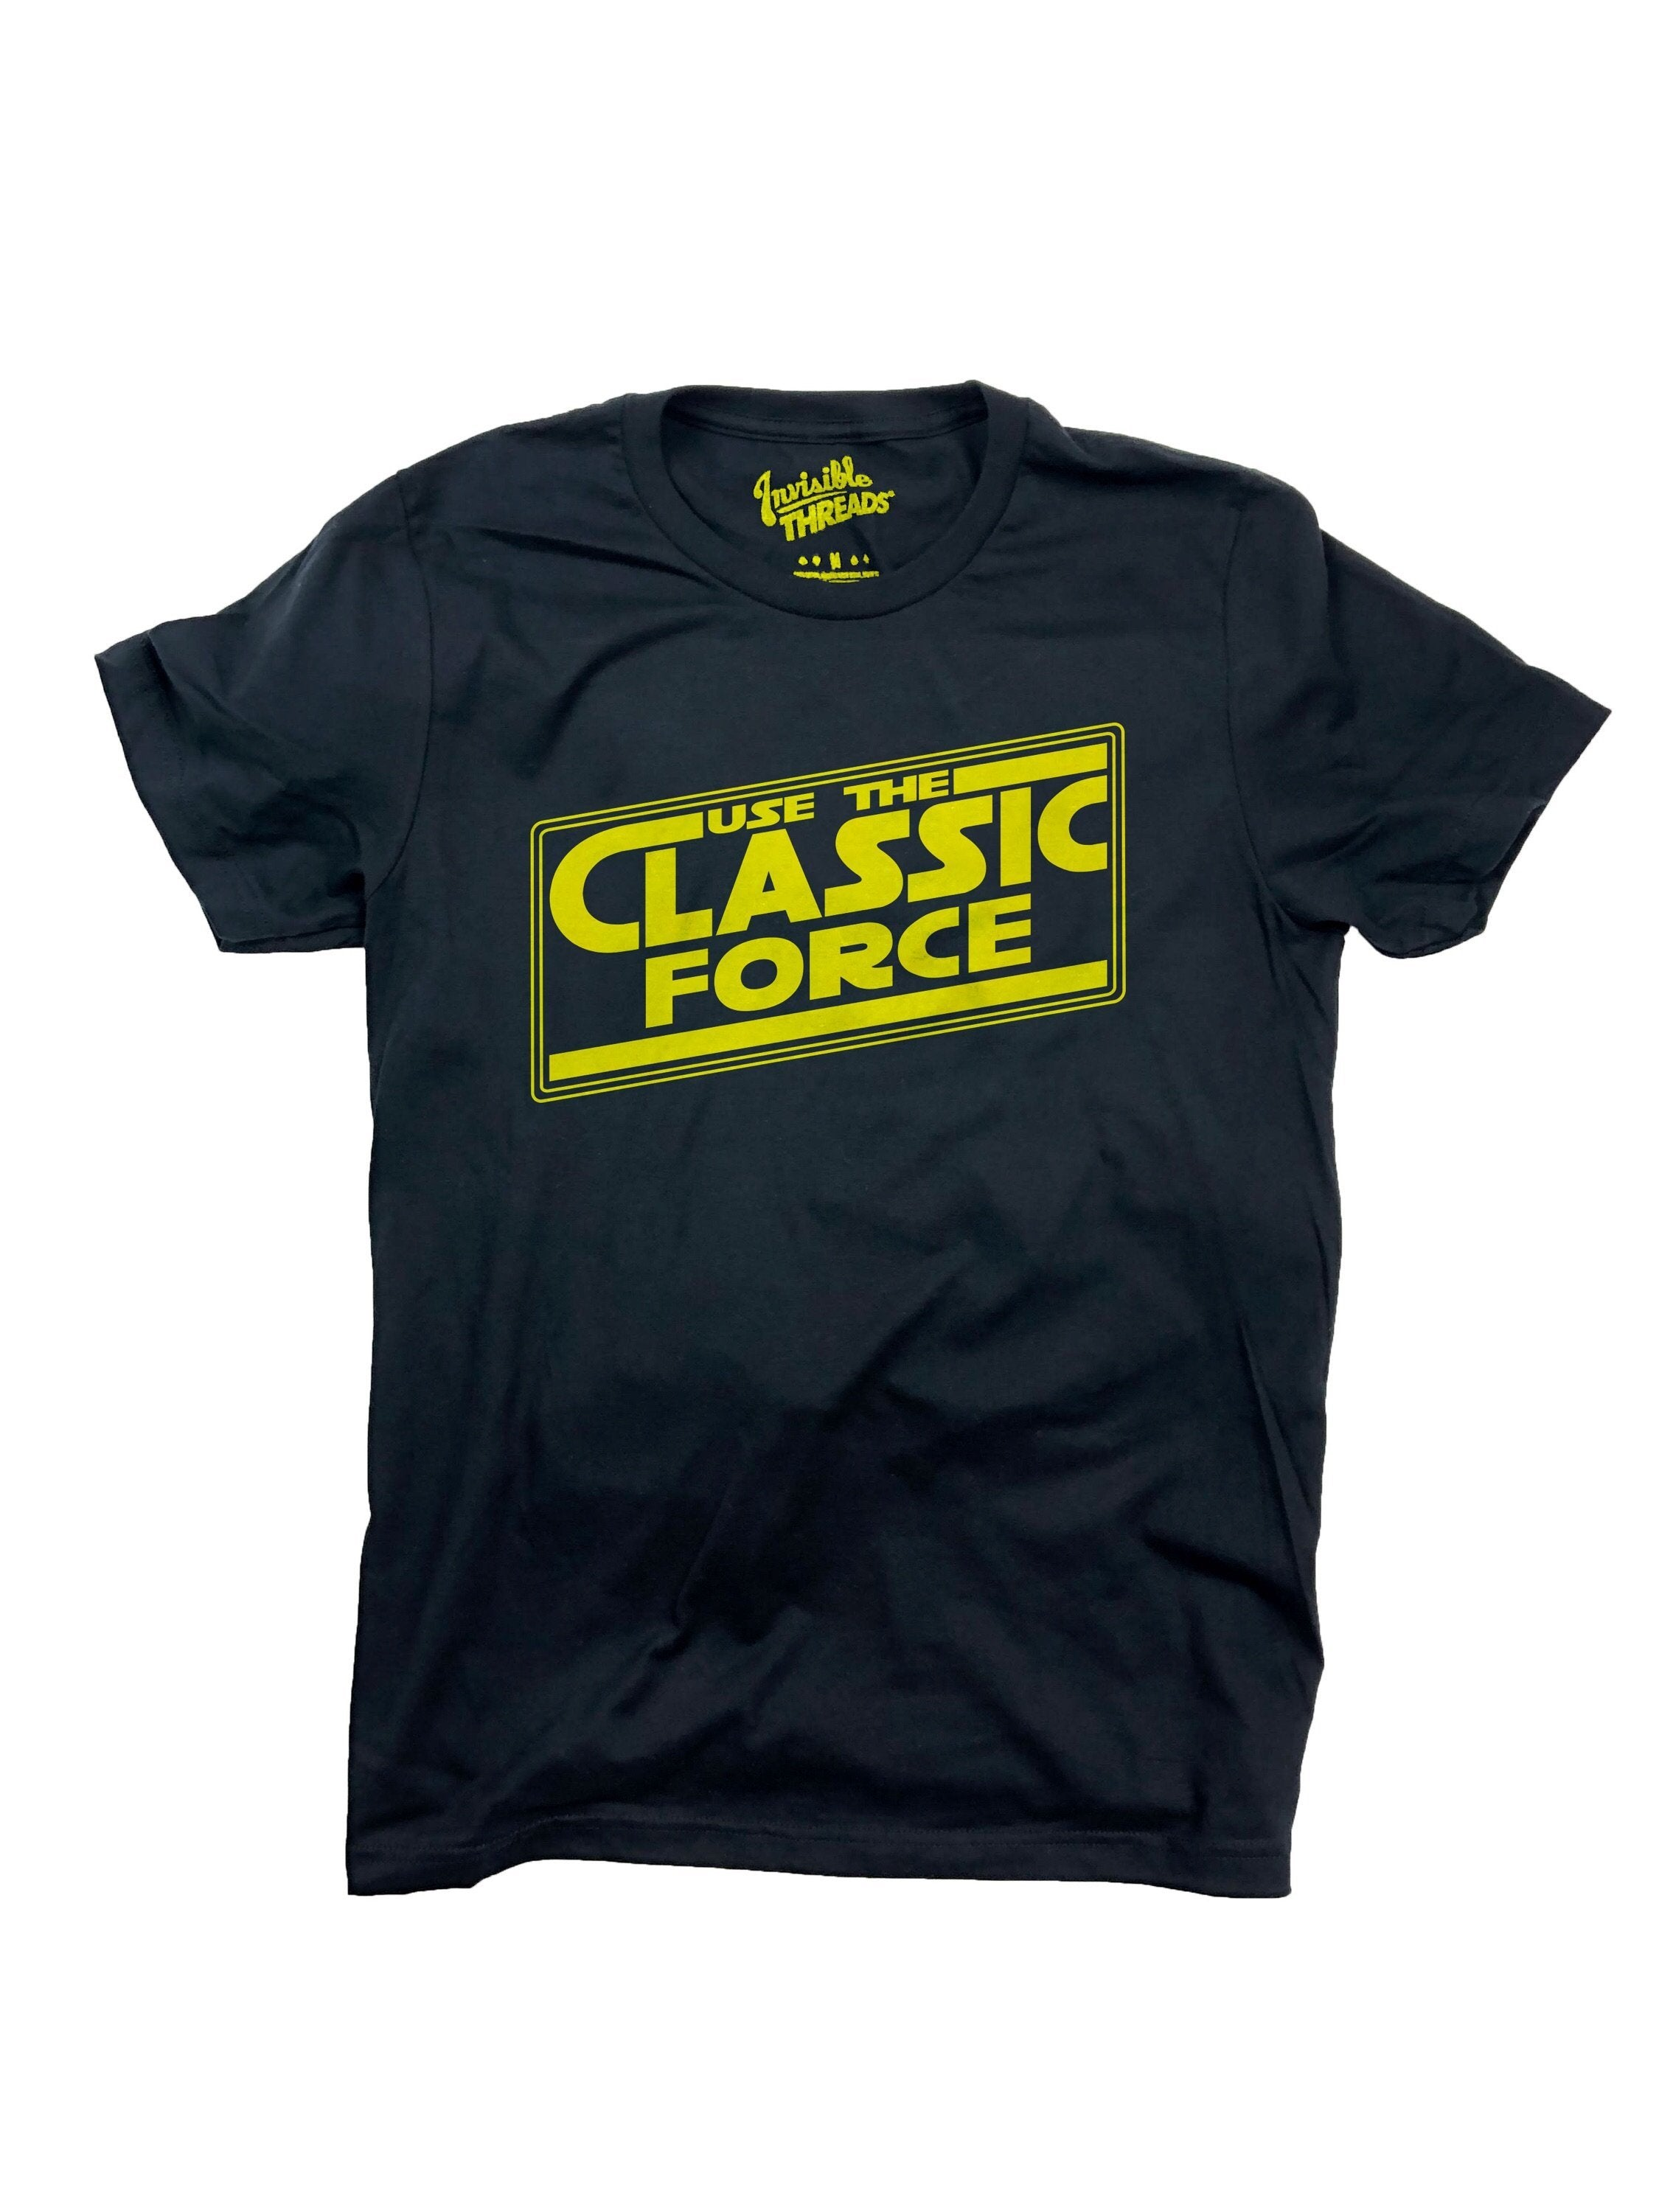 """Use the Classic Force"""